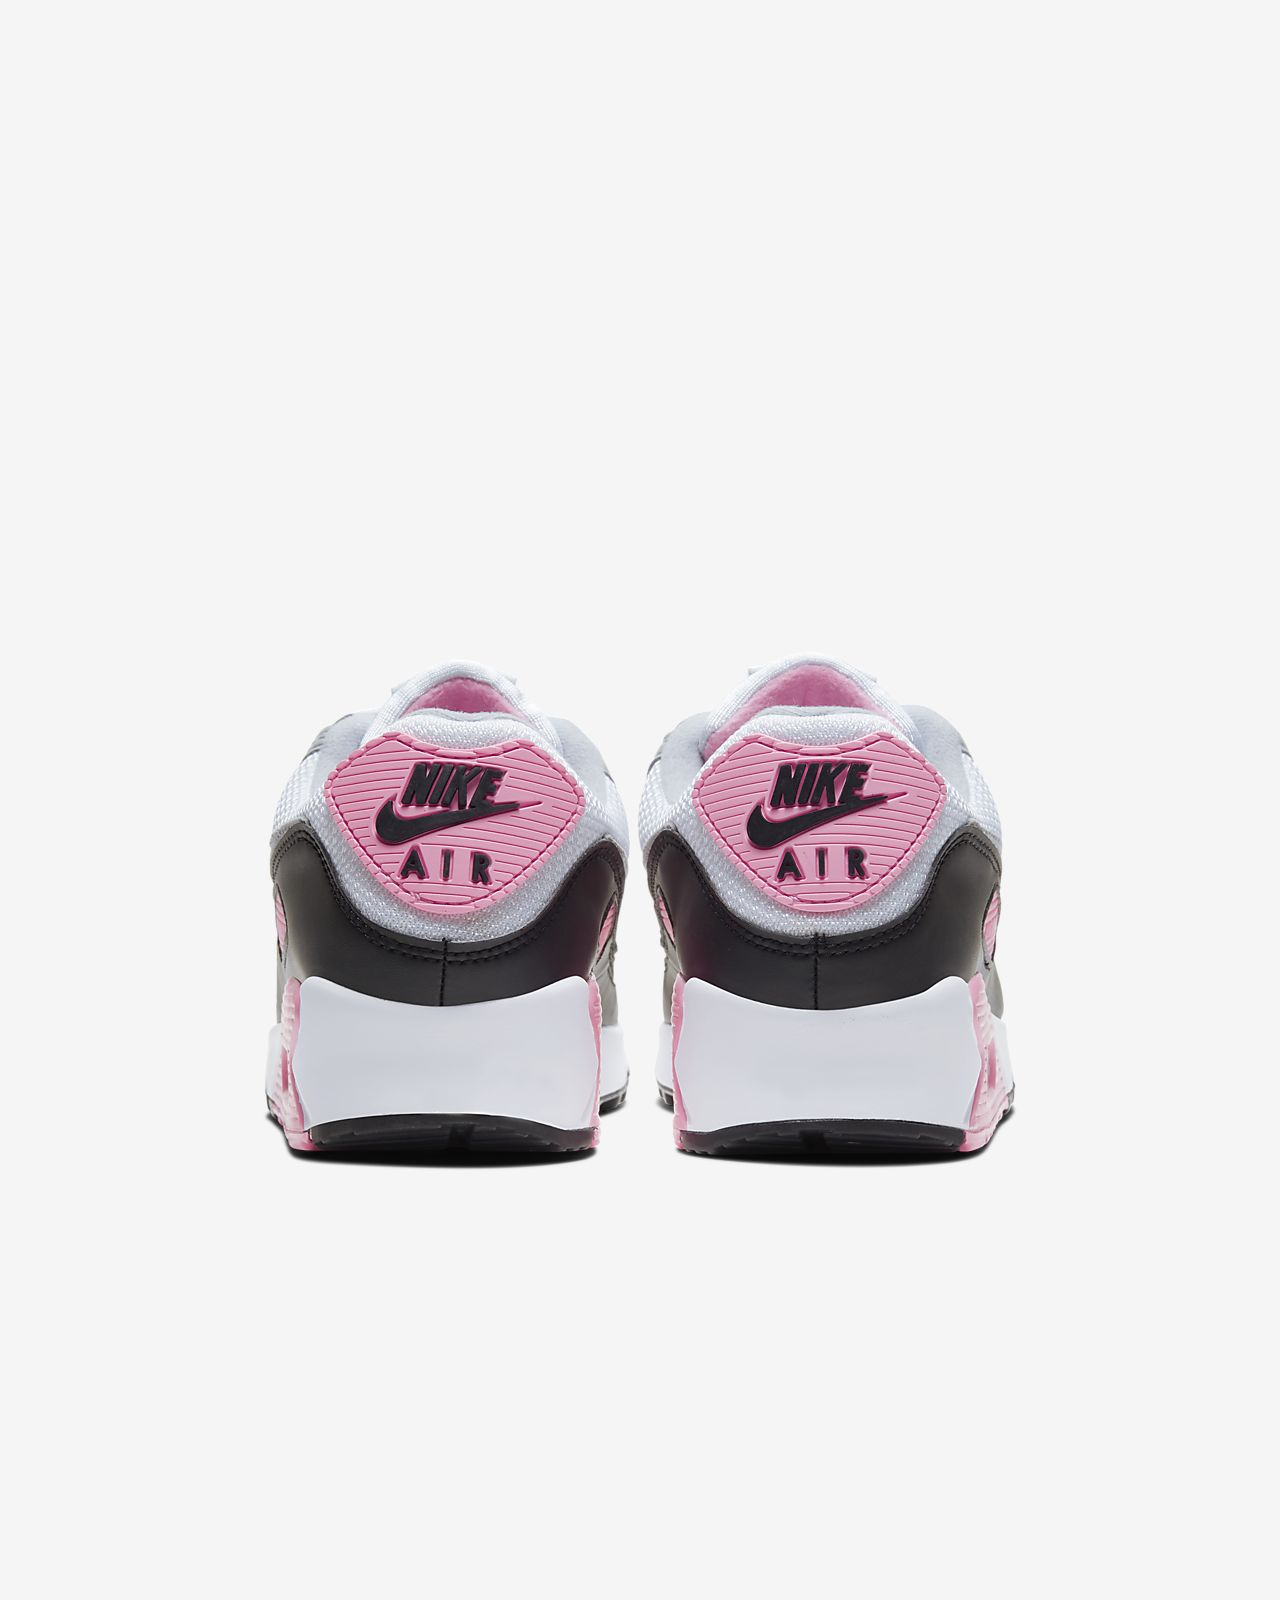 Chaussure Nike Air Max 200 Pour Jeune Enfant Blanc from Nike on 21 Buttons